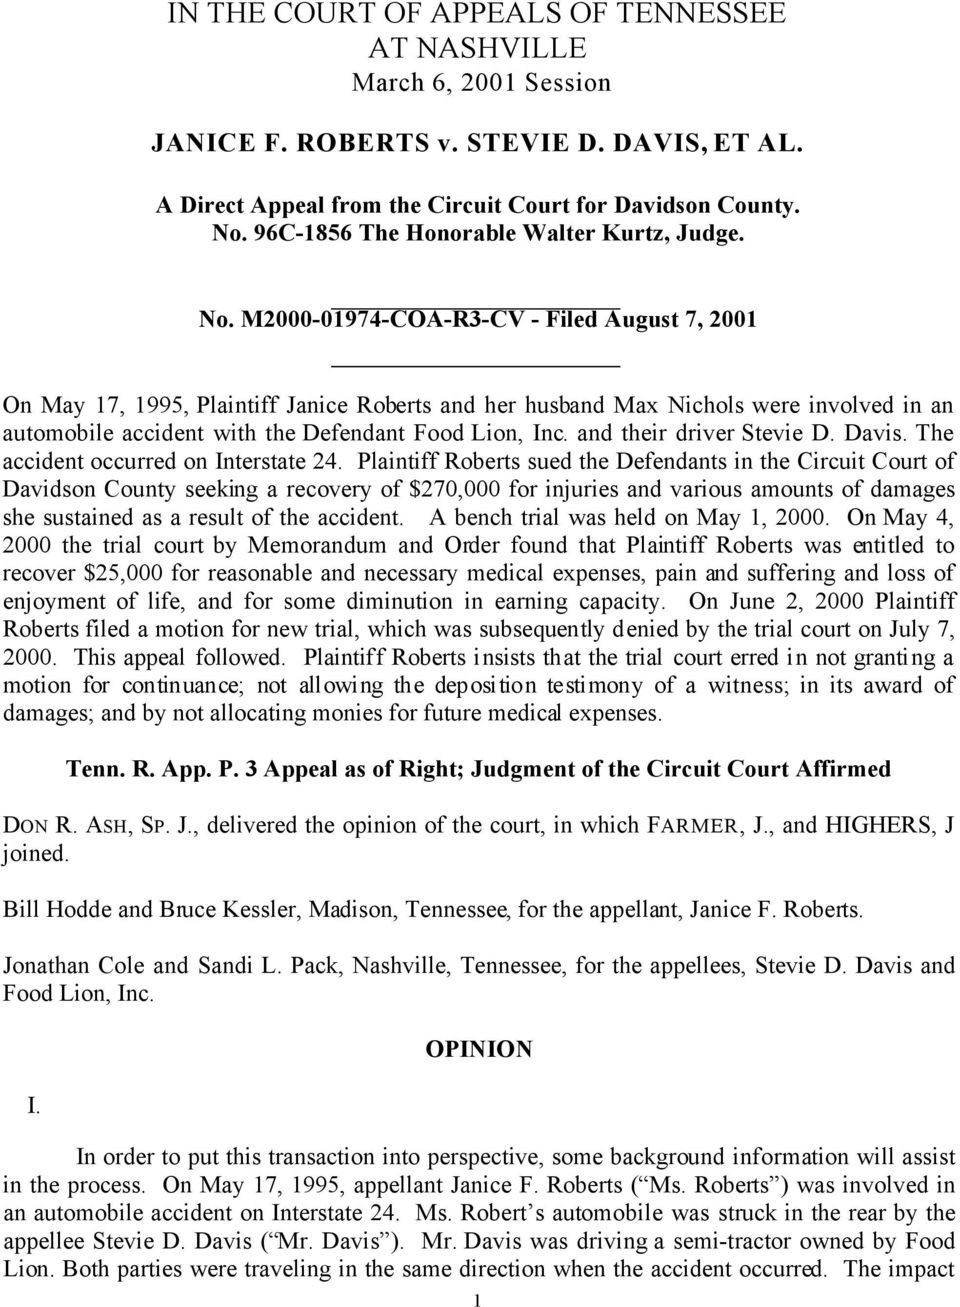 M2000-01974-COA-R3-CV - Filed August 7, 2001 On May 17, 1995, Plaintiff Janice Roberts and her husband Max Nichols were involved in an automobile accident with the Defendant Food Lion, Inc.